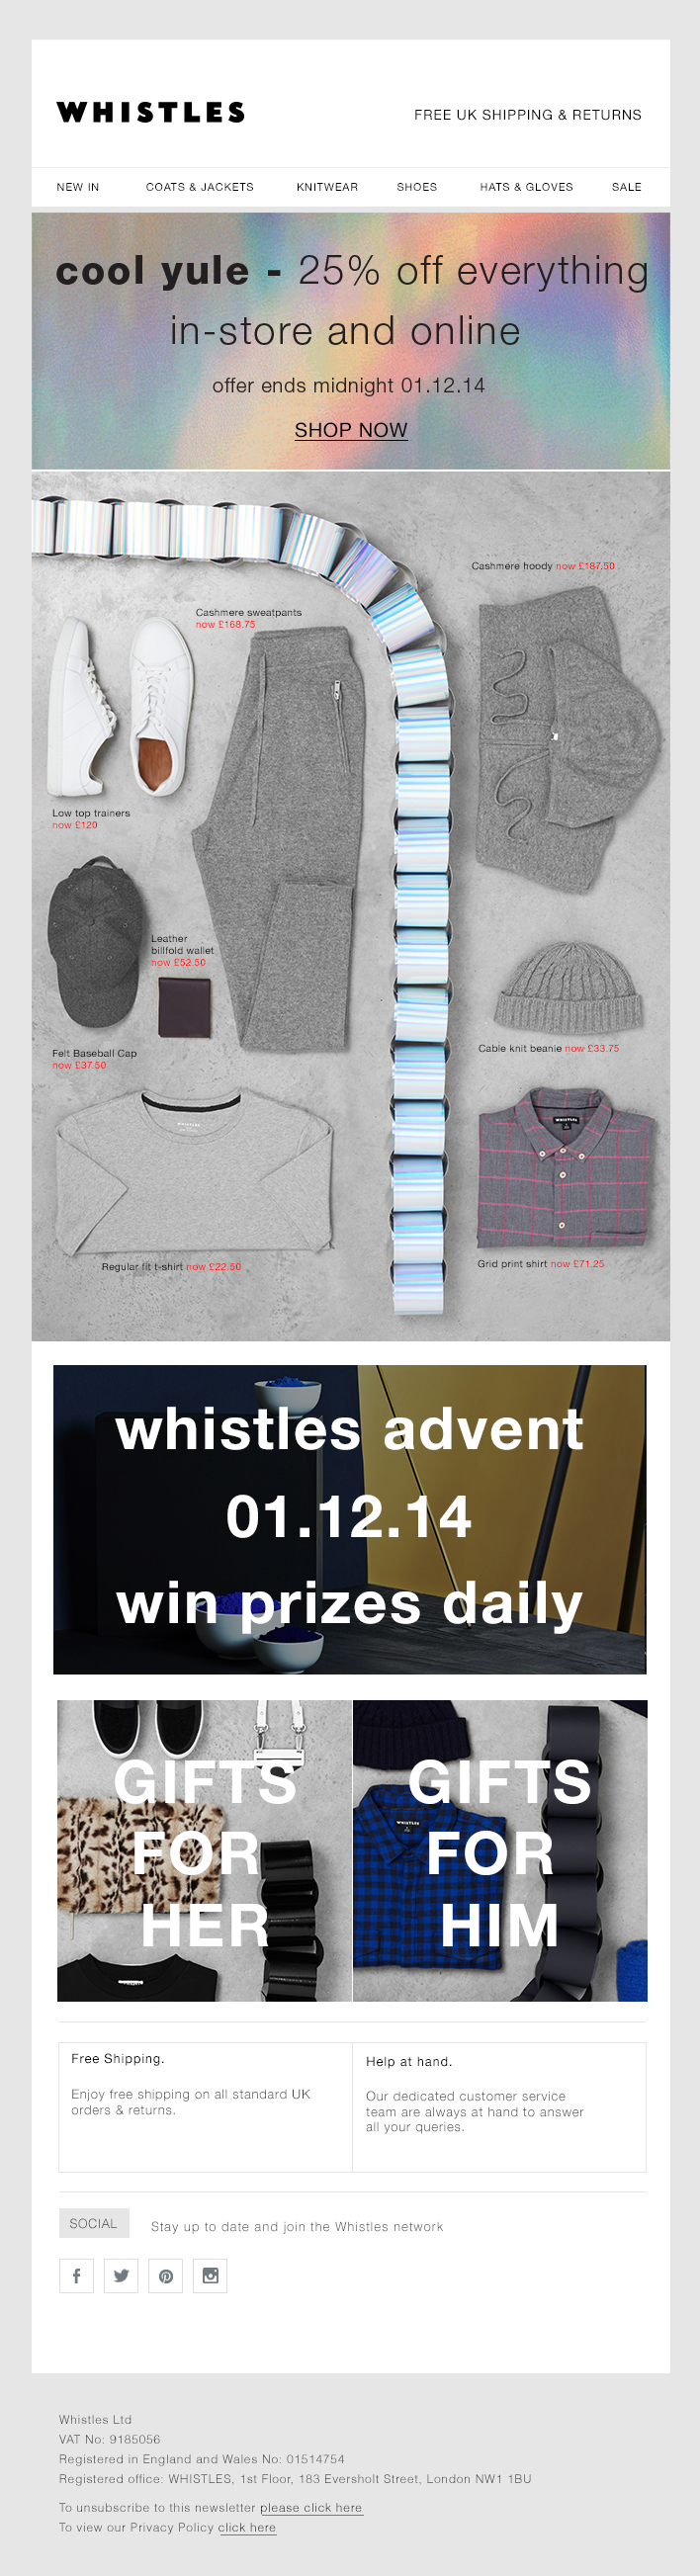 WH_NEWSLETTER_WK44_FRI_25% MENS.jpg